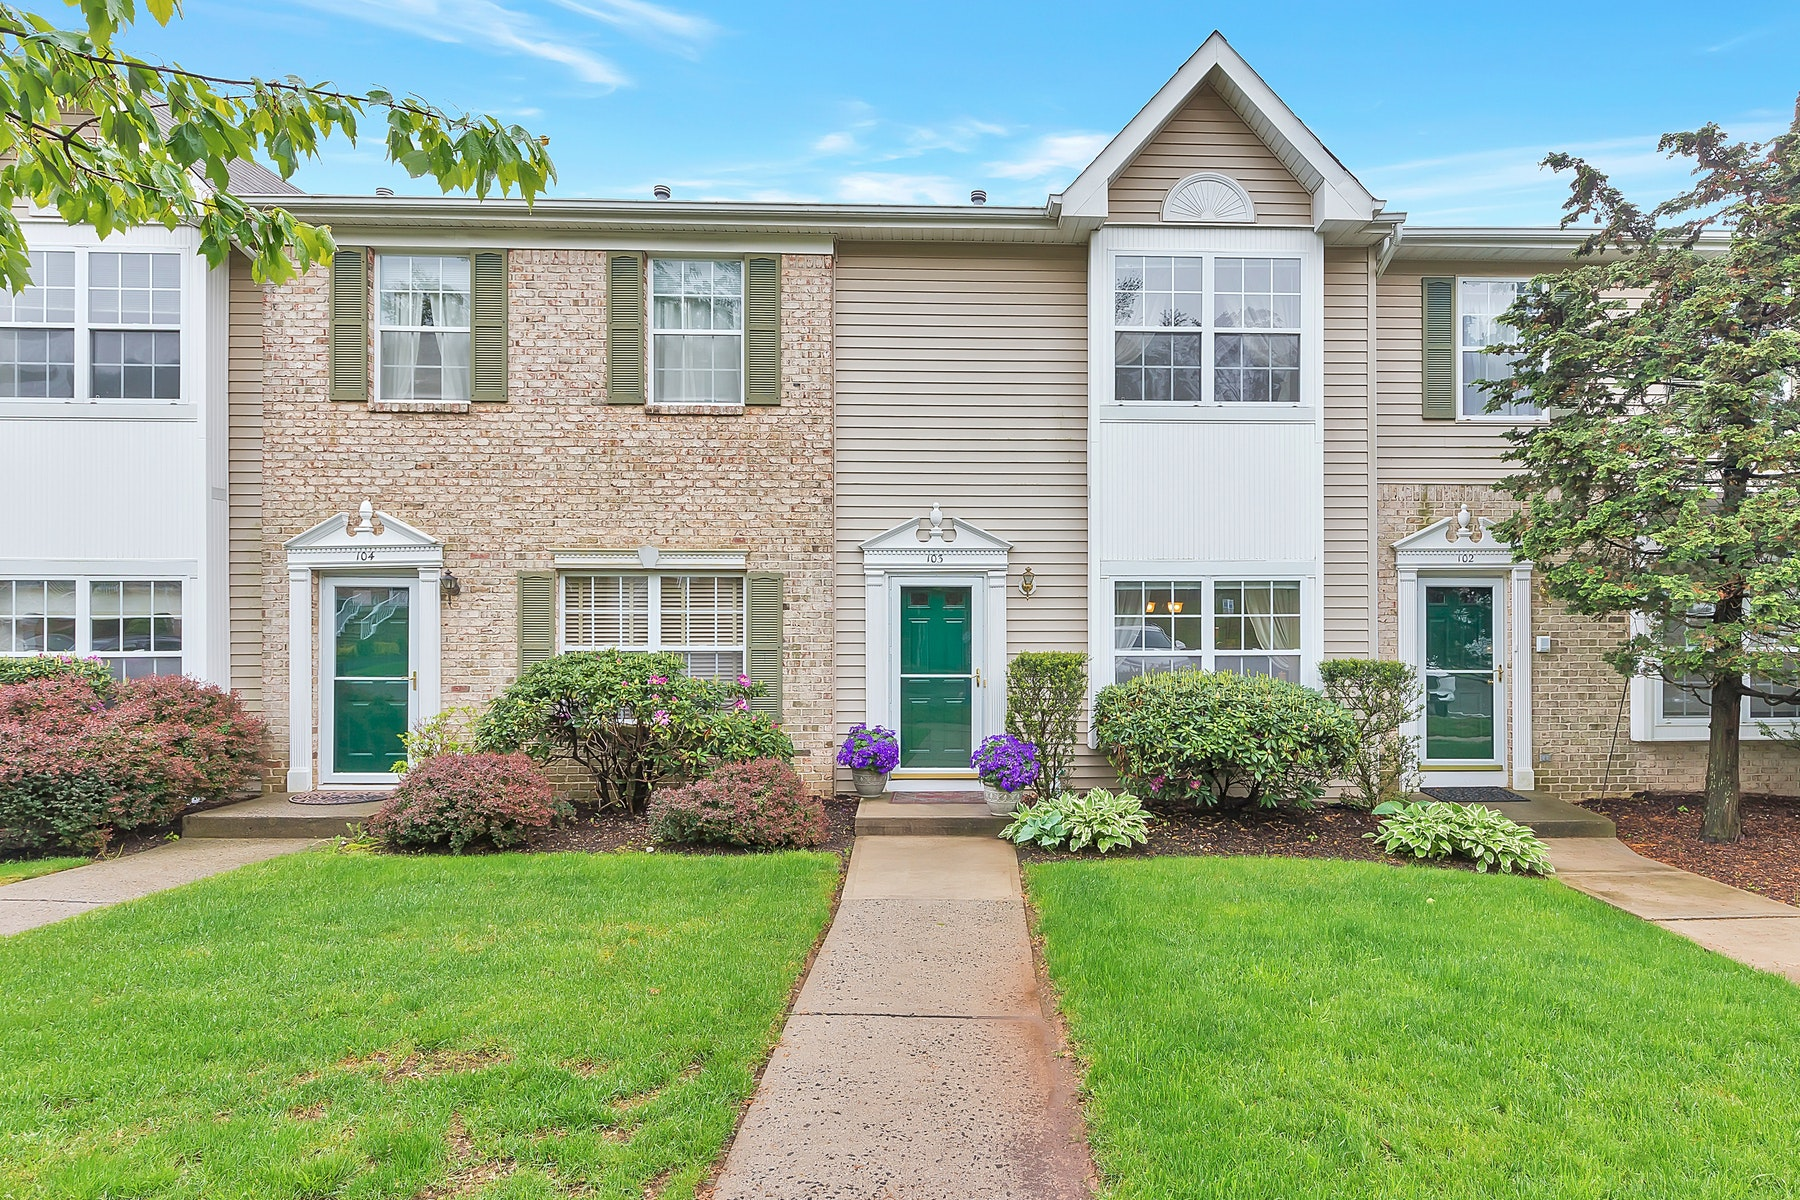 townhouses for Sale at Chic Townhome 103 Tallwood Lane Green Brook Township, New Jersey 08812 United States